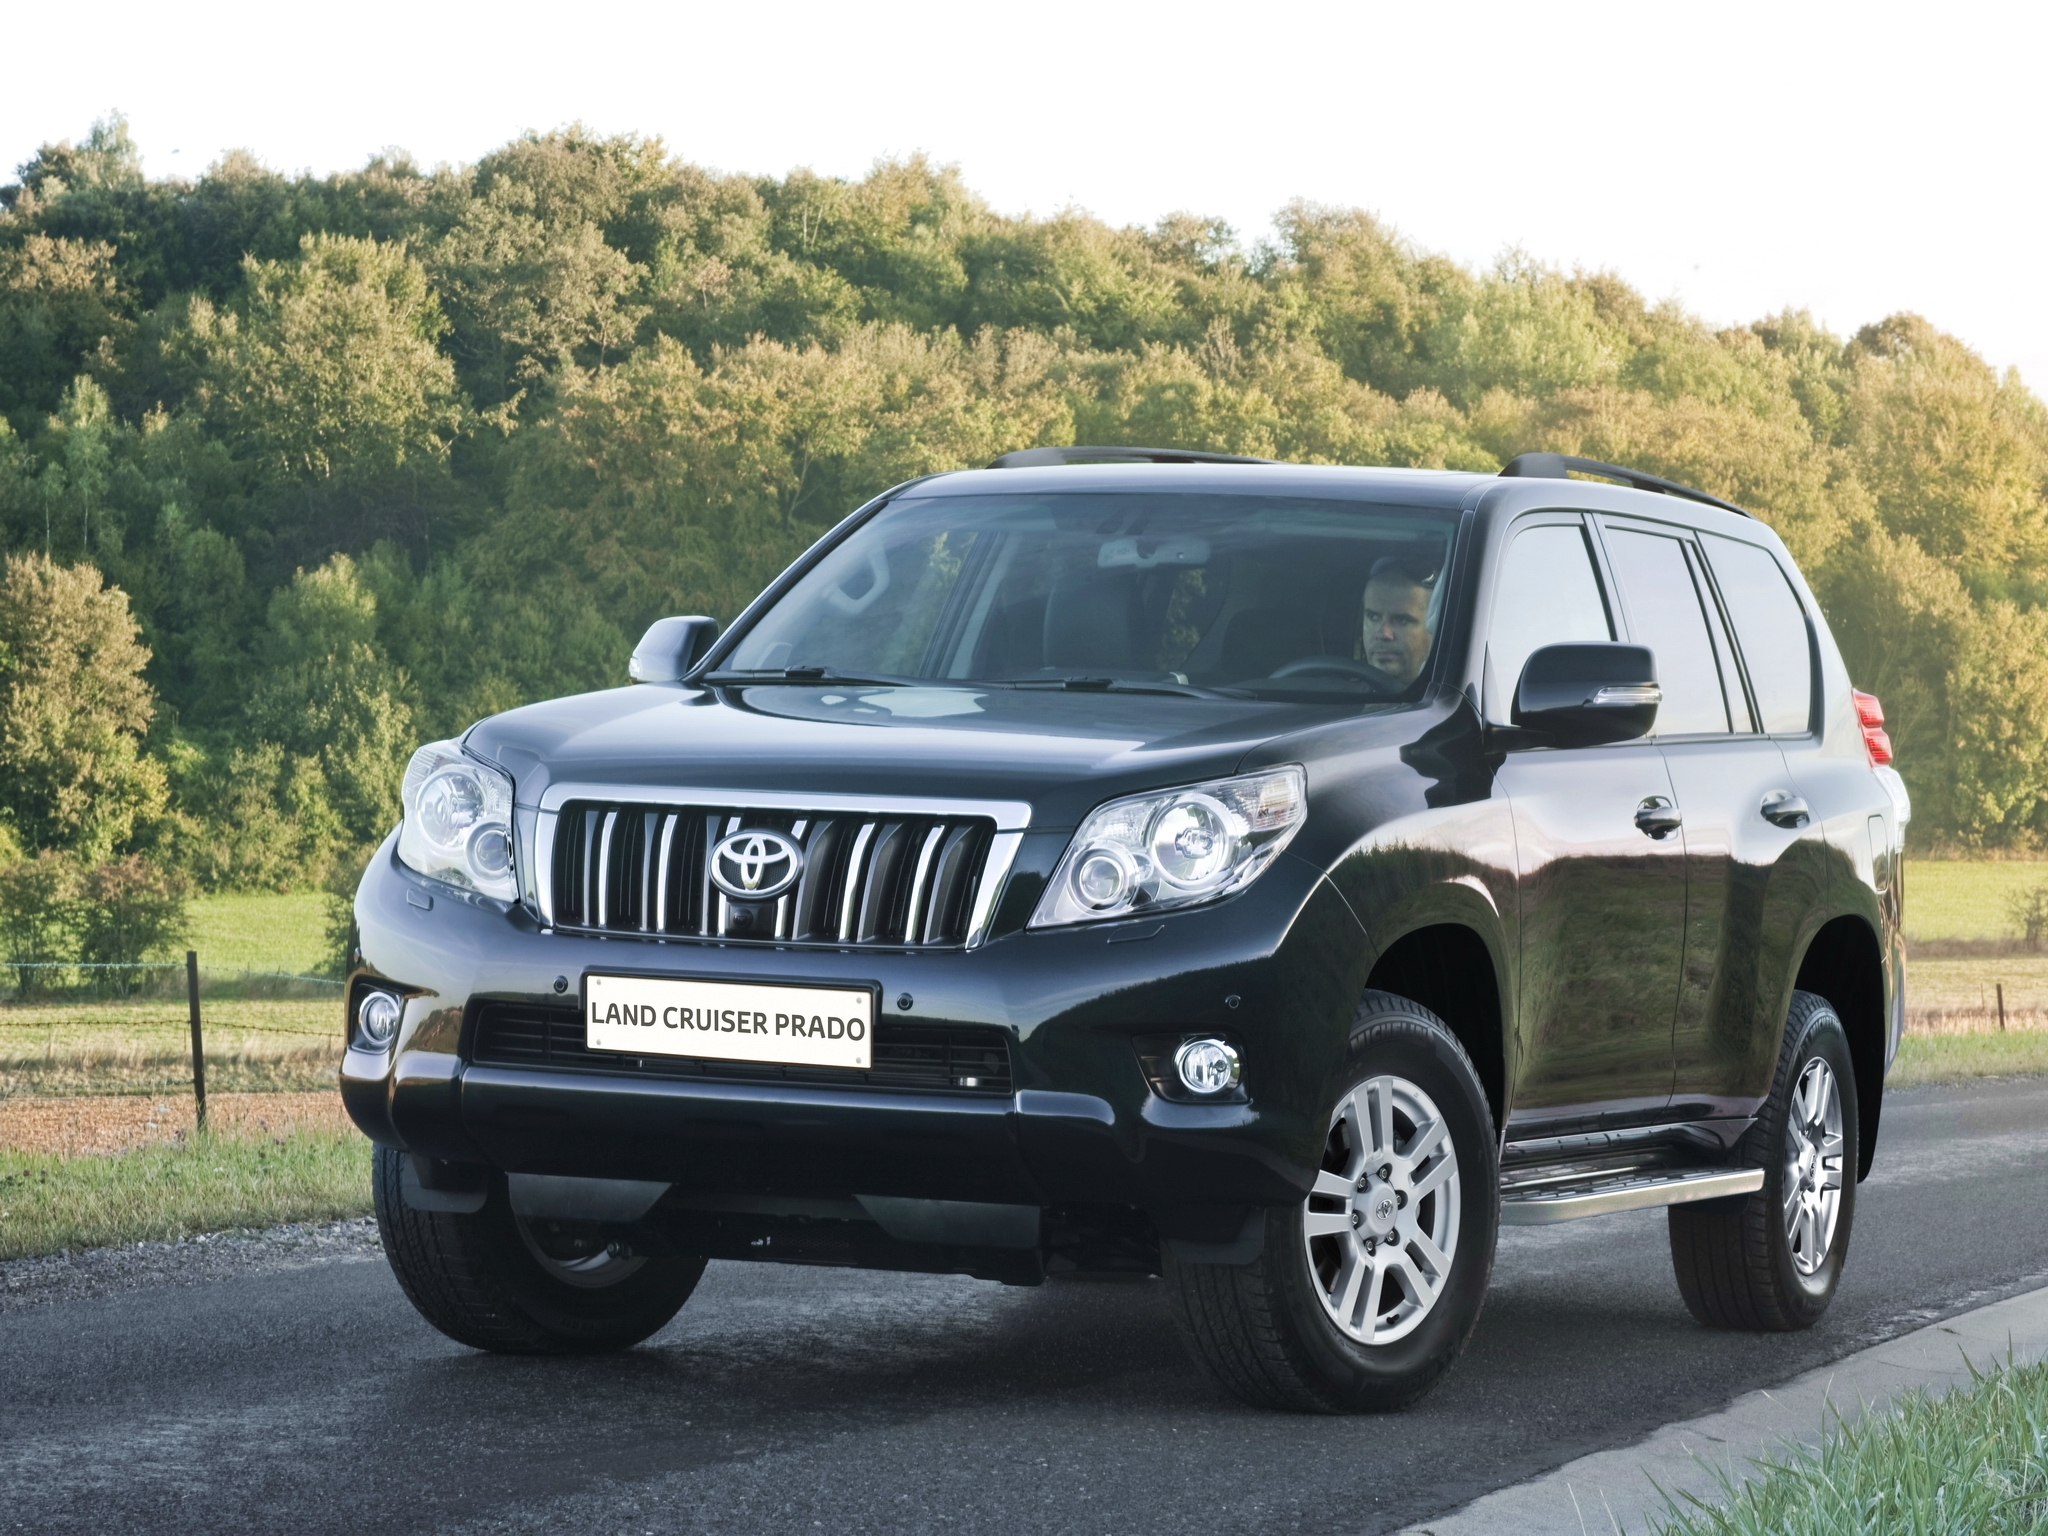 Toyota Land Cruiser Prado 150.